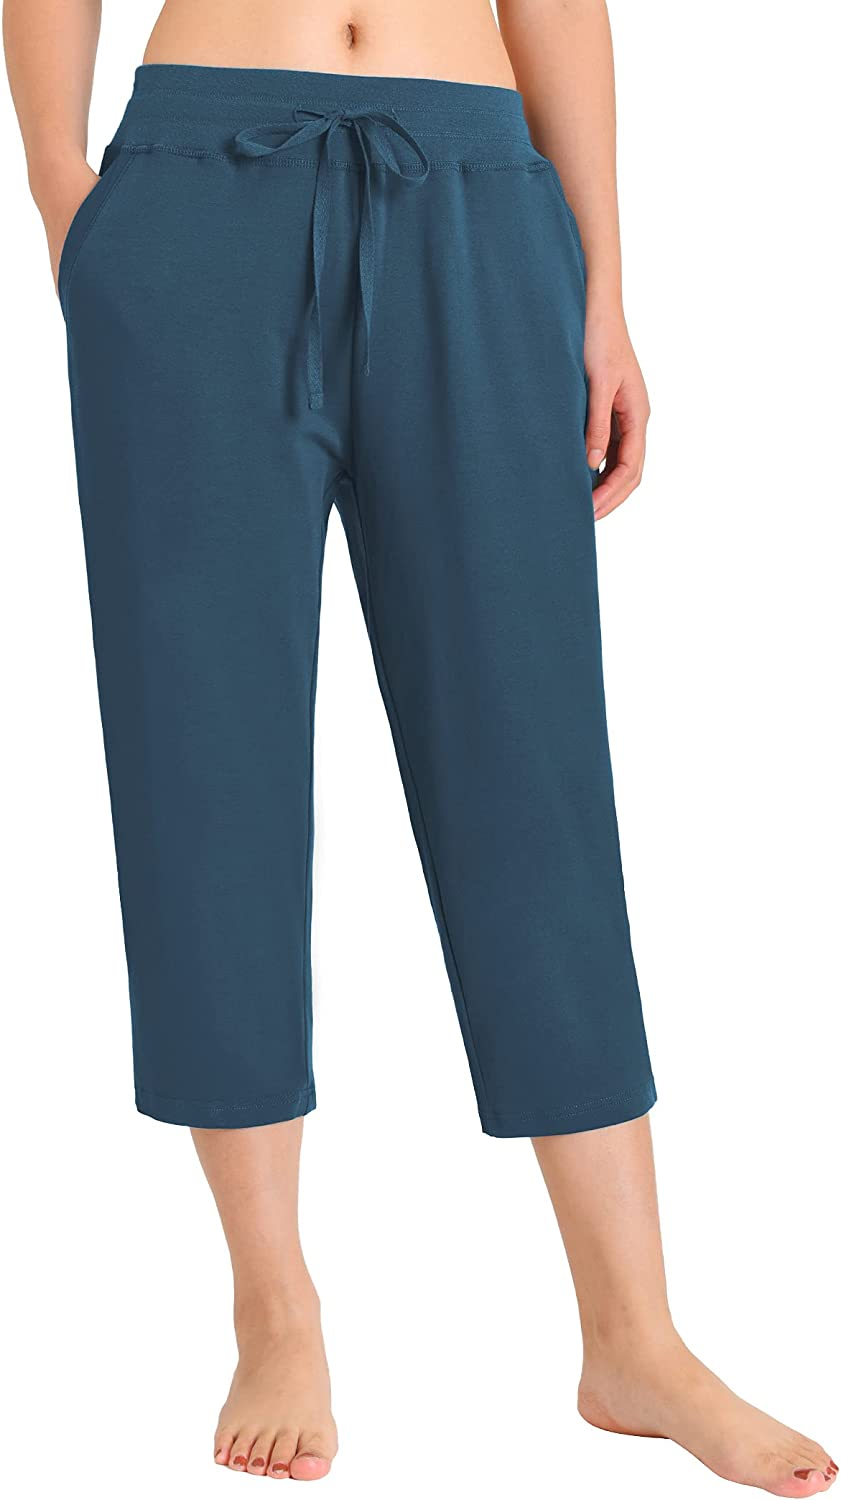 Weintee Fashionable Women's SEAL limited product Cotton Capri Pants Pockets with